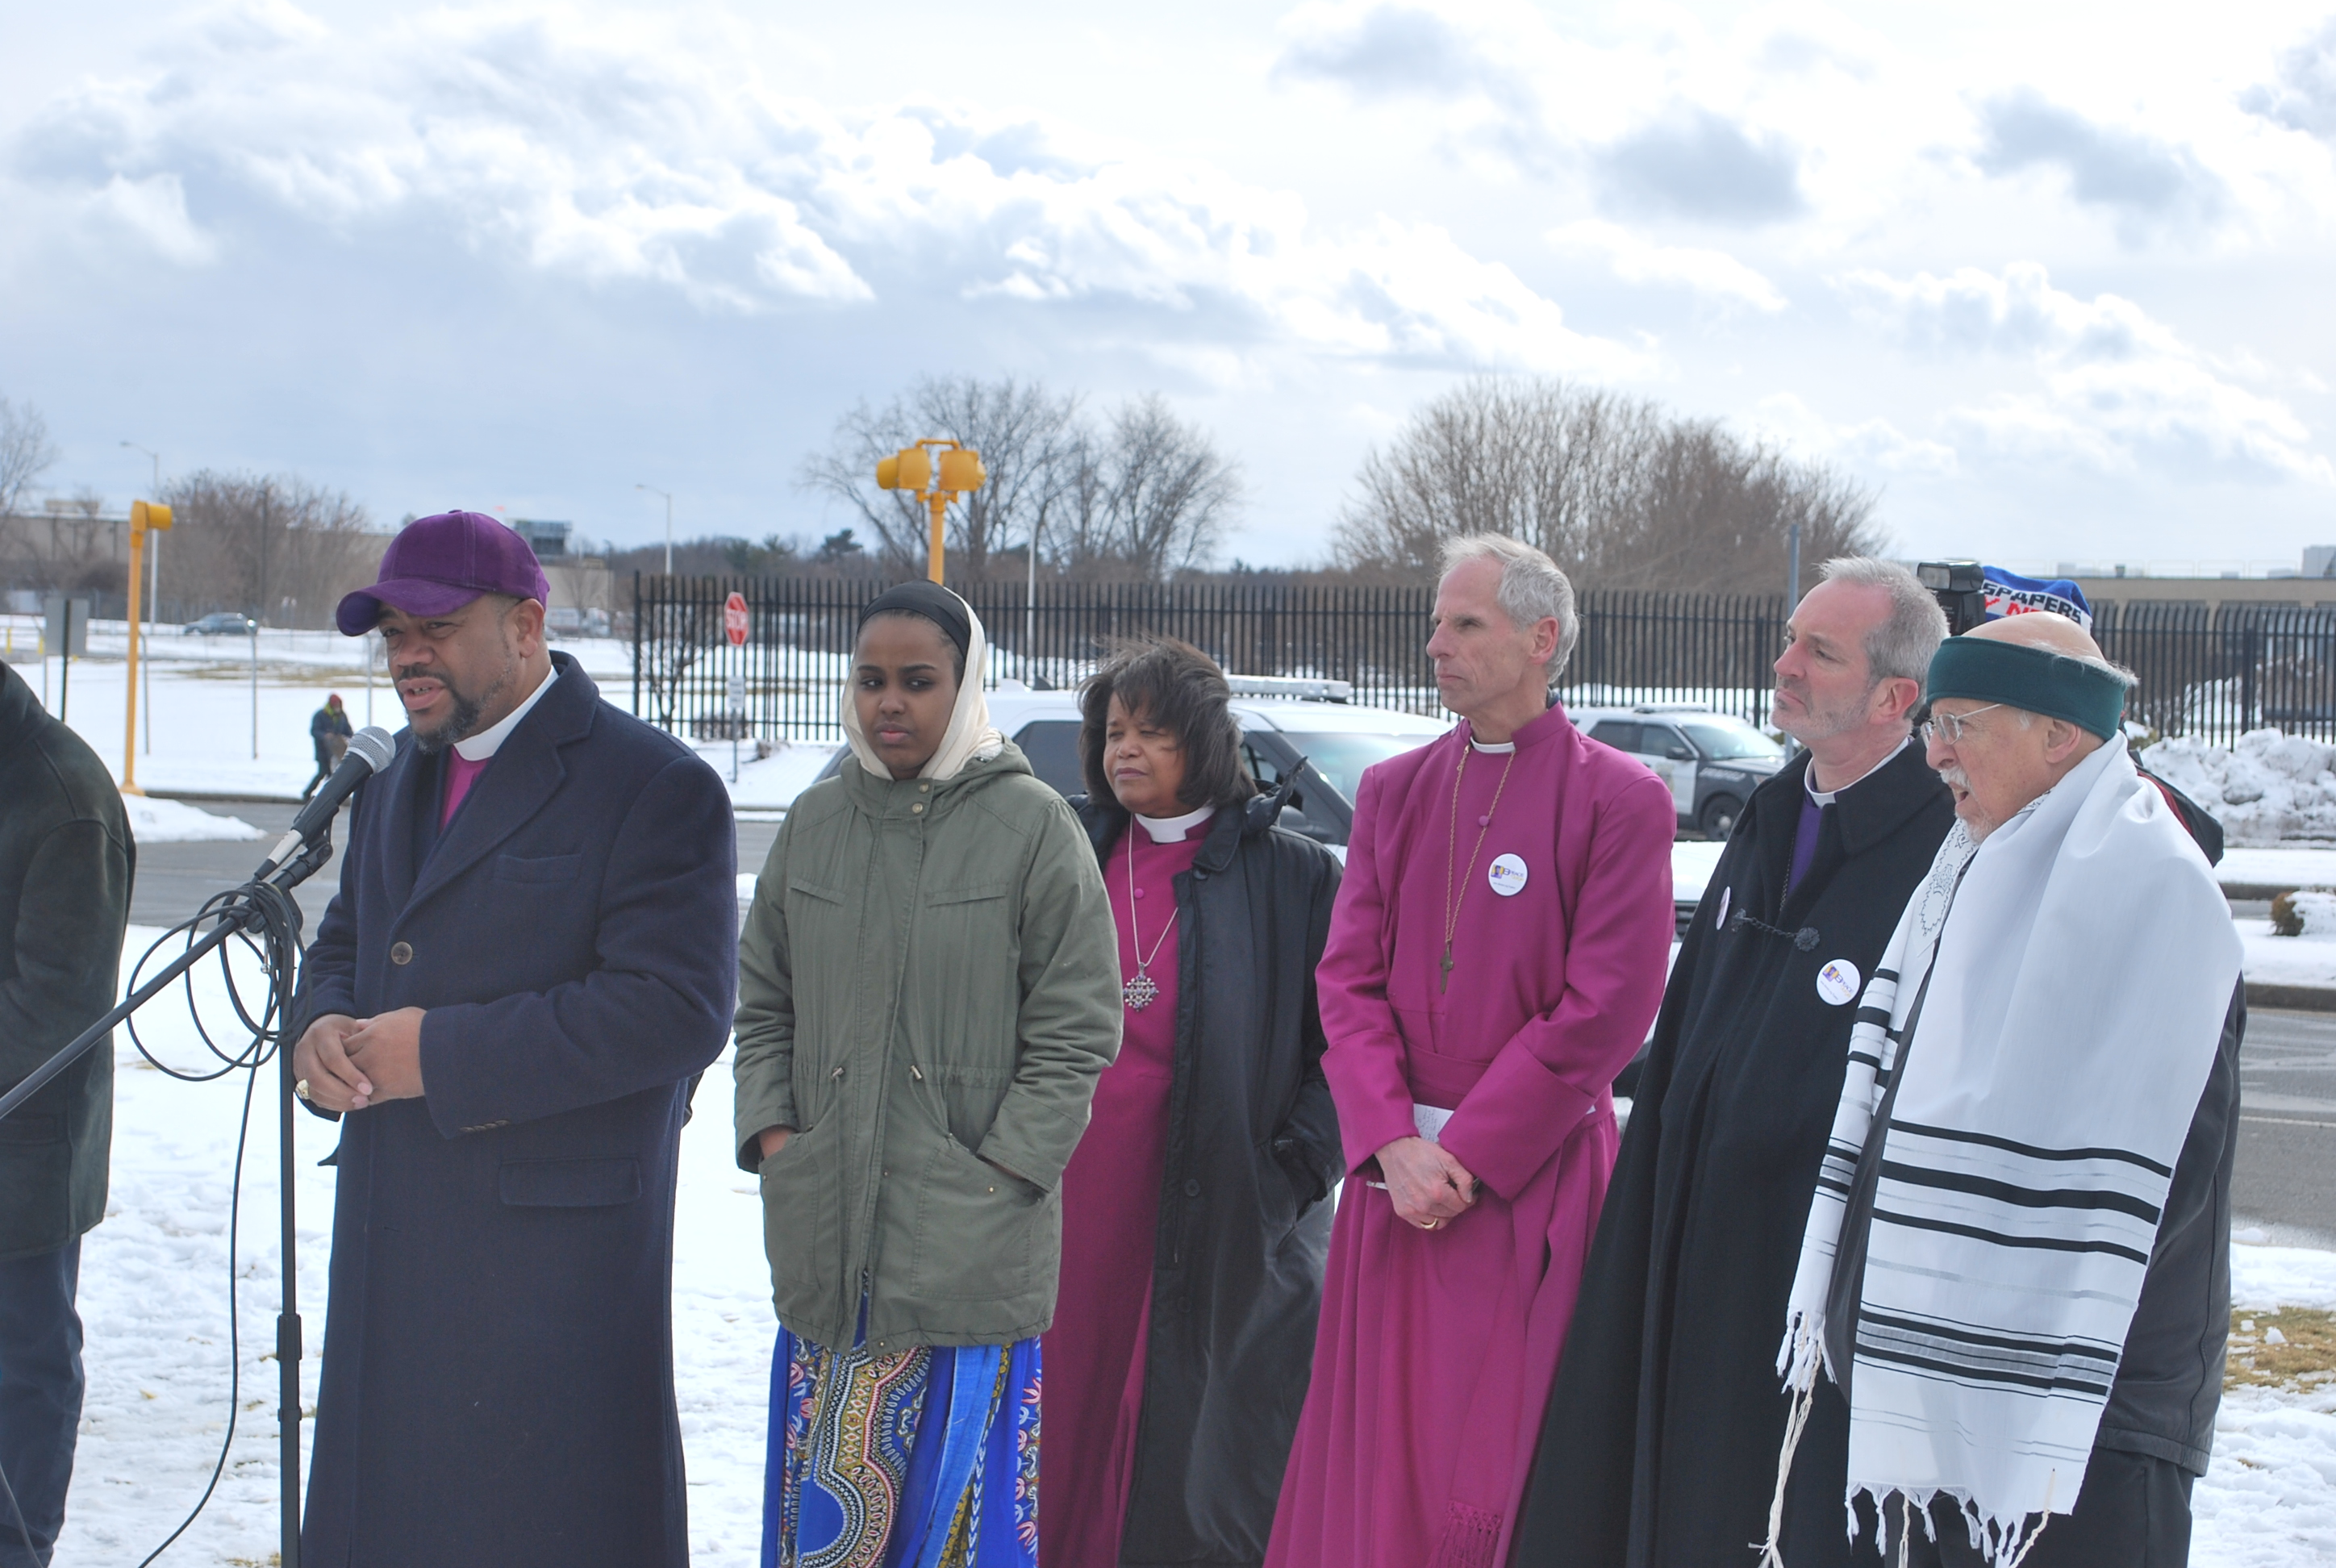 Amid school walkouts protesters in springfield demand meeting about talbert swan ii pastor of spring of hope church of god in christ in springfield left and other faith leaders rallied behind students calling for a fandeluxe Images